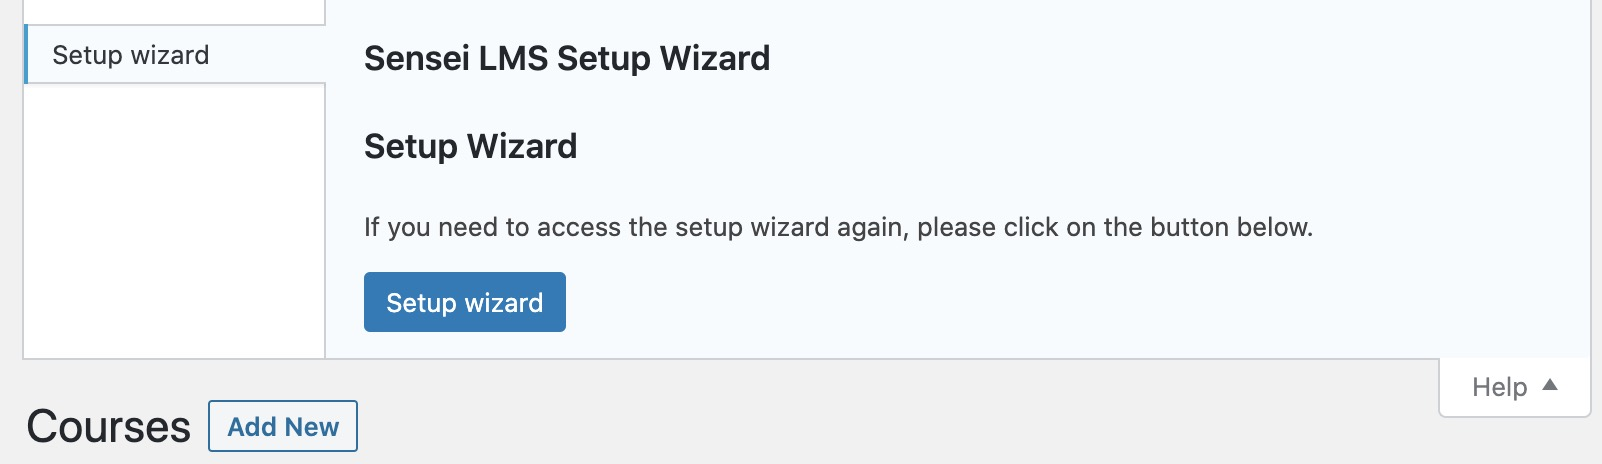 Launch the setup wizard